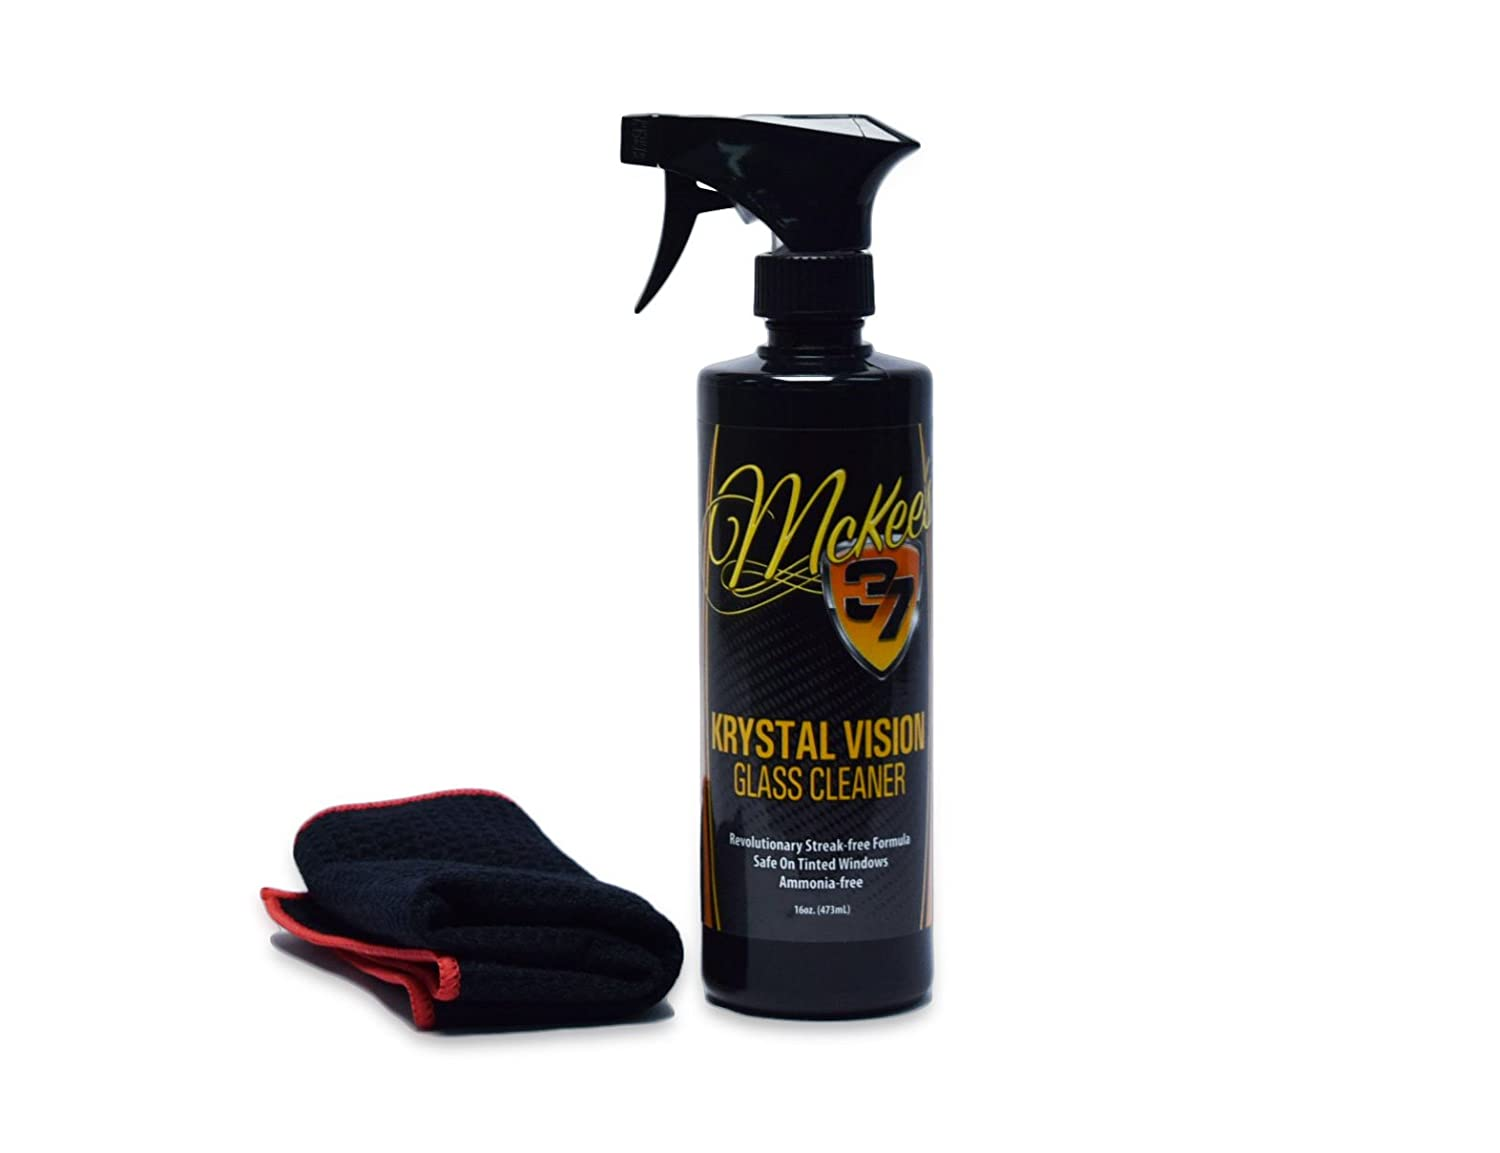 Best Android Cleaner 2020 Amazon.com: McKee's 37 MK37 2020 Krystal Vision Glass Cleaner, 16